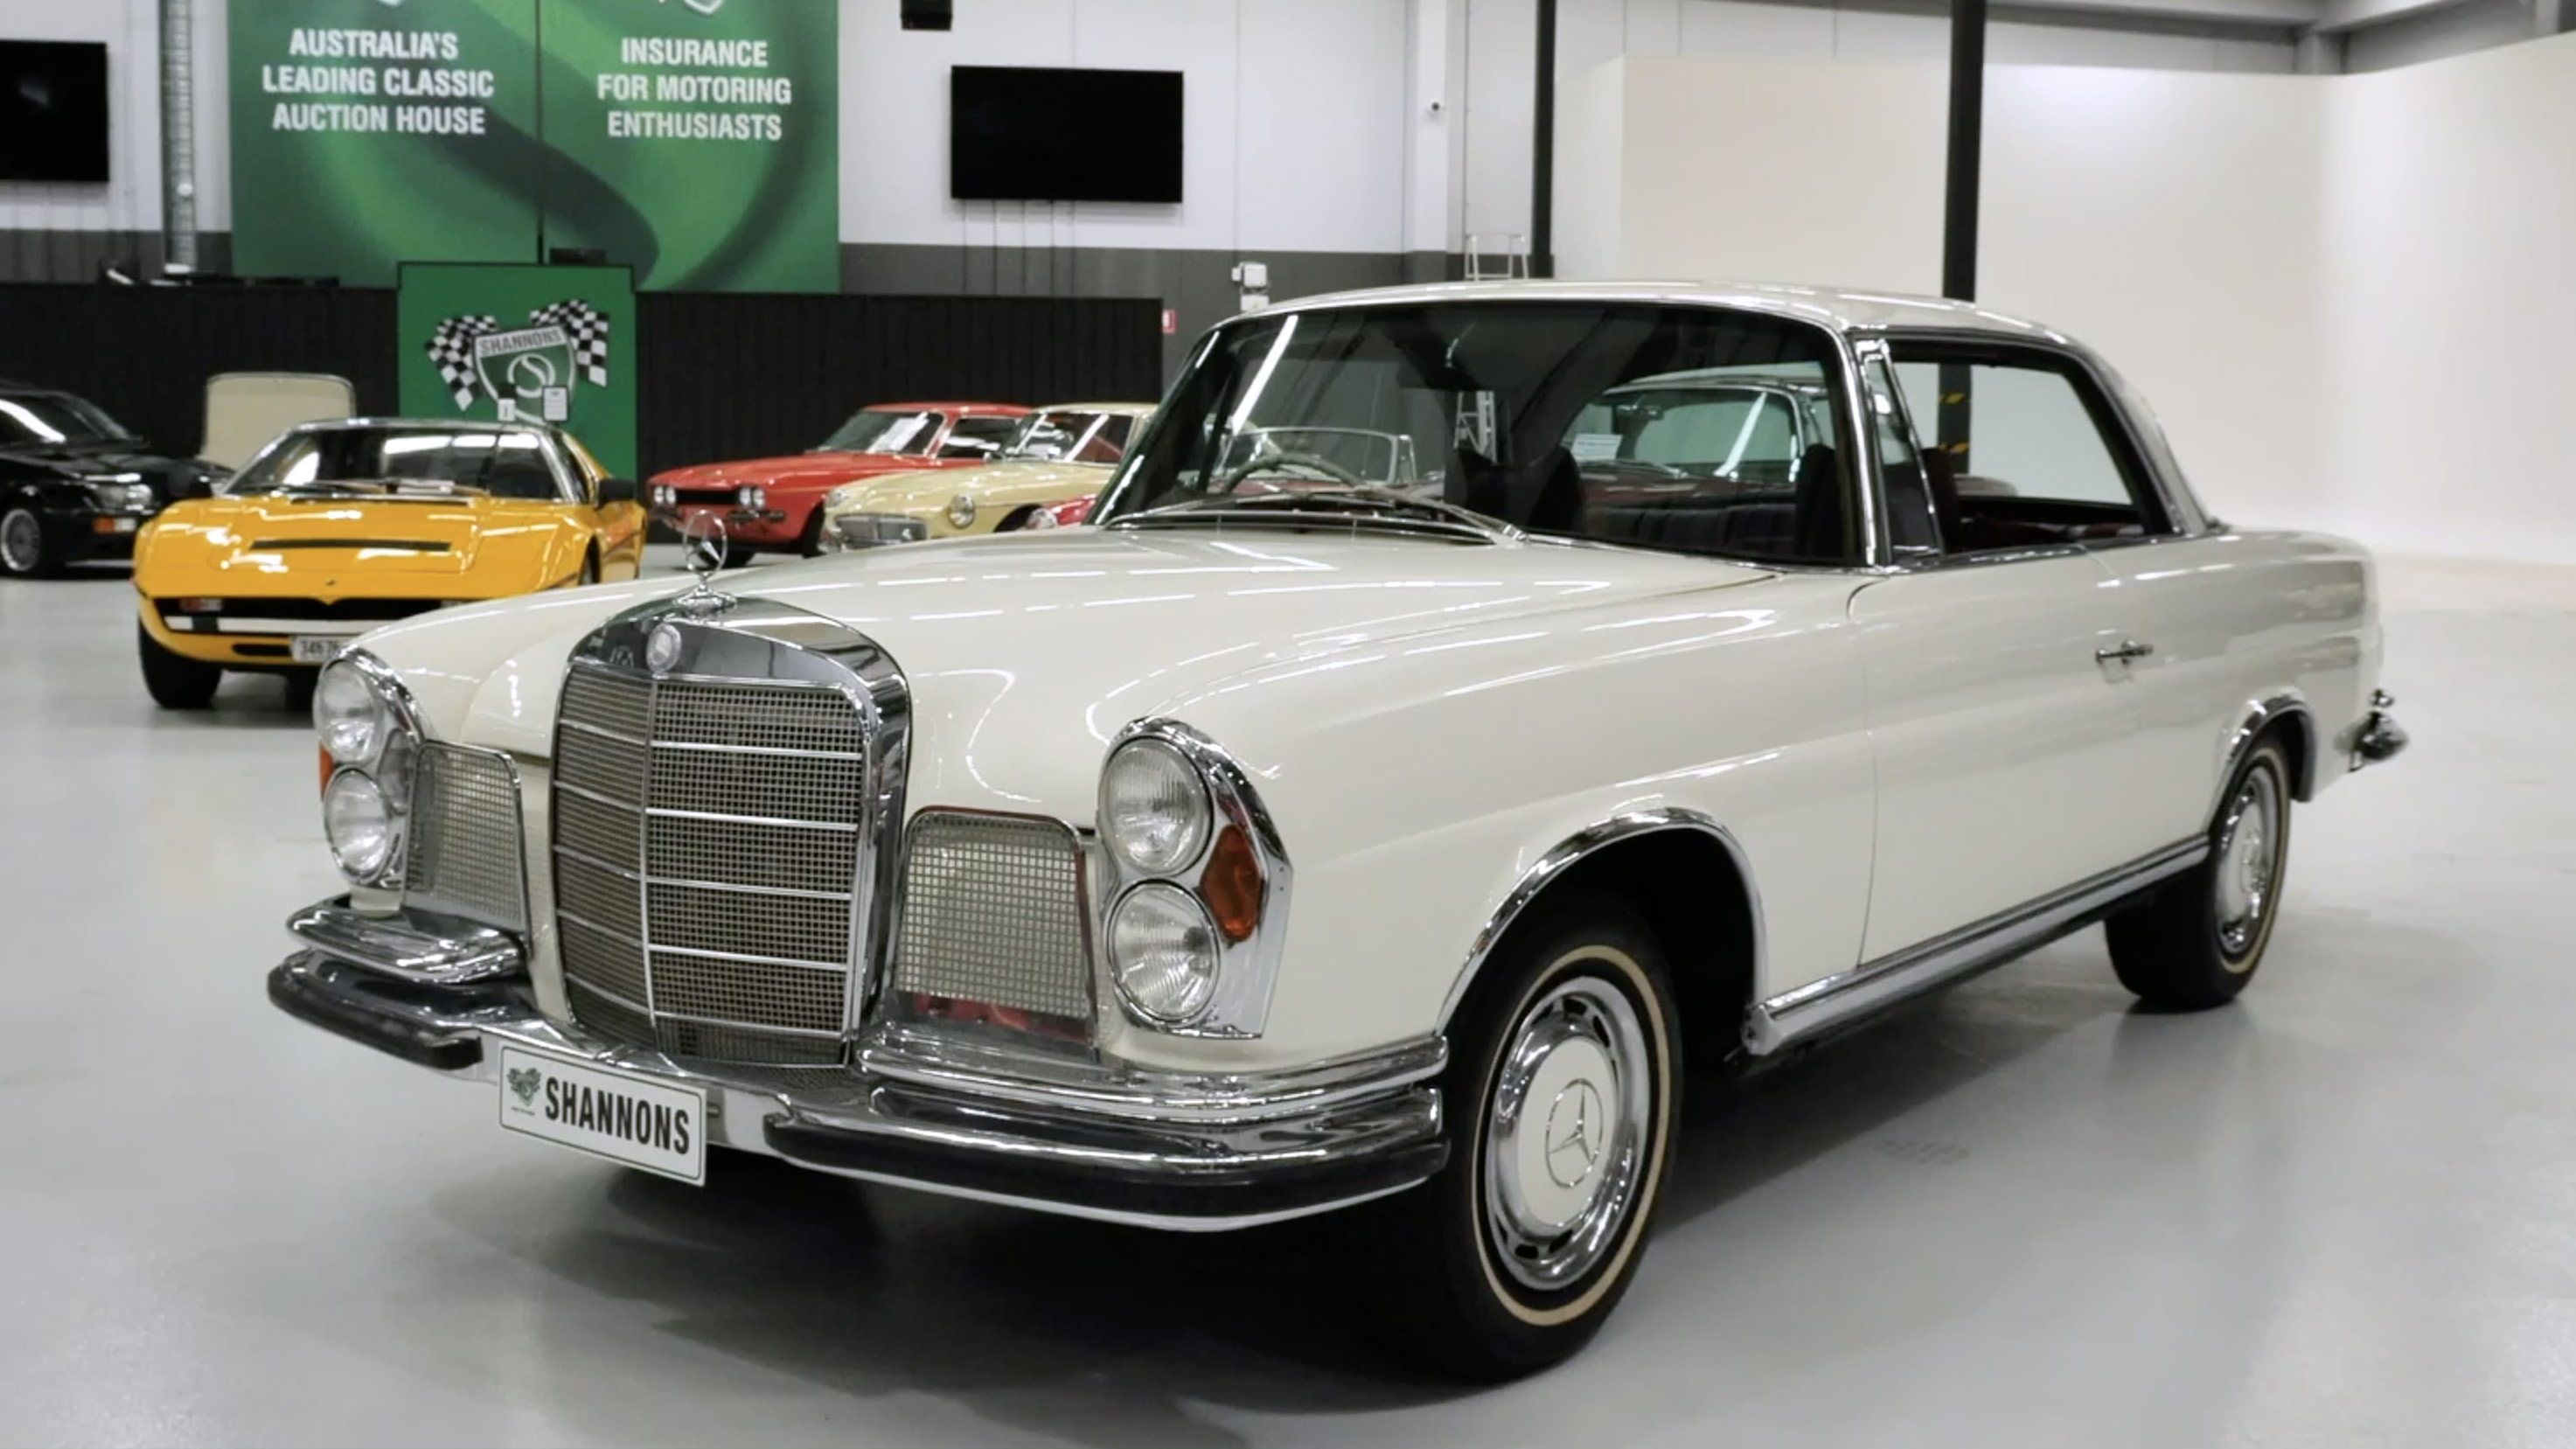 1969 Mercedes-Benz 280SE Coupe - 2021 Shannons Summer Timed Online Auction